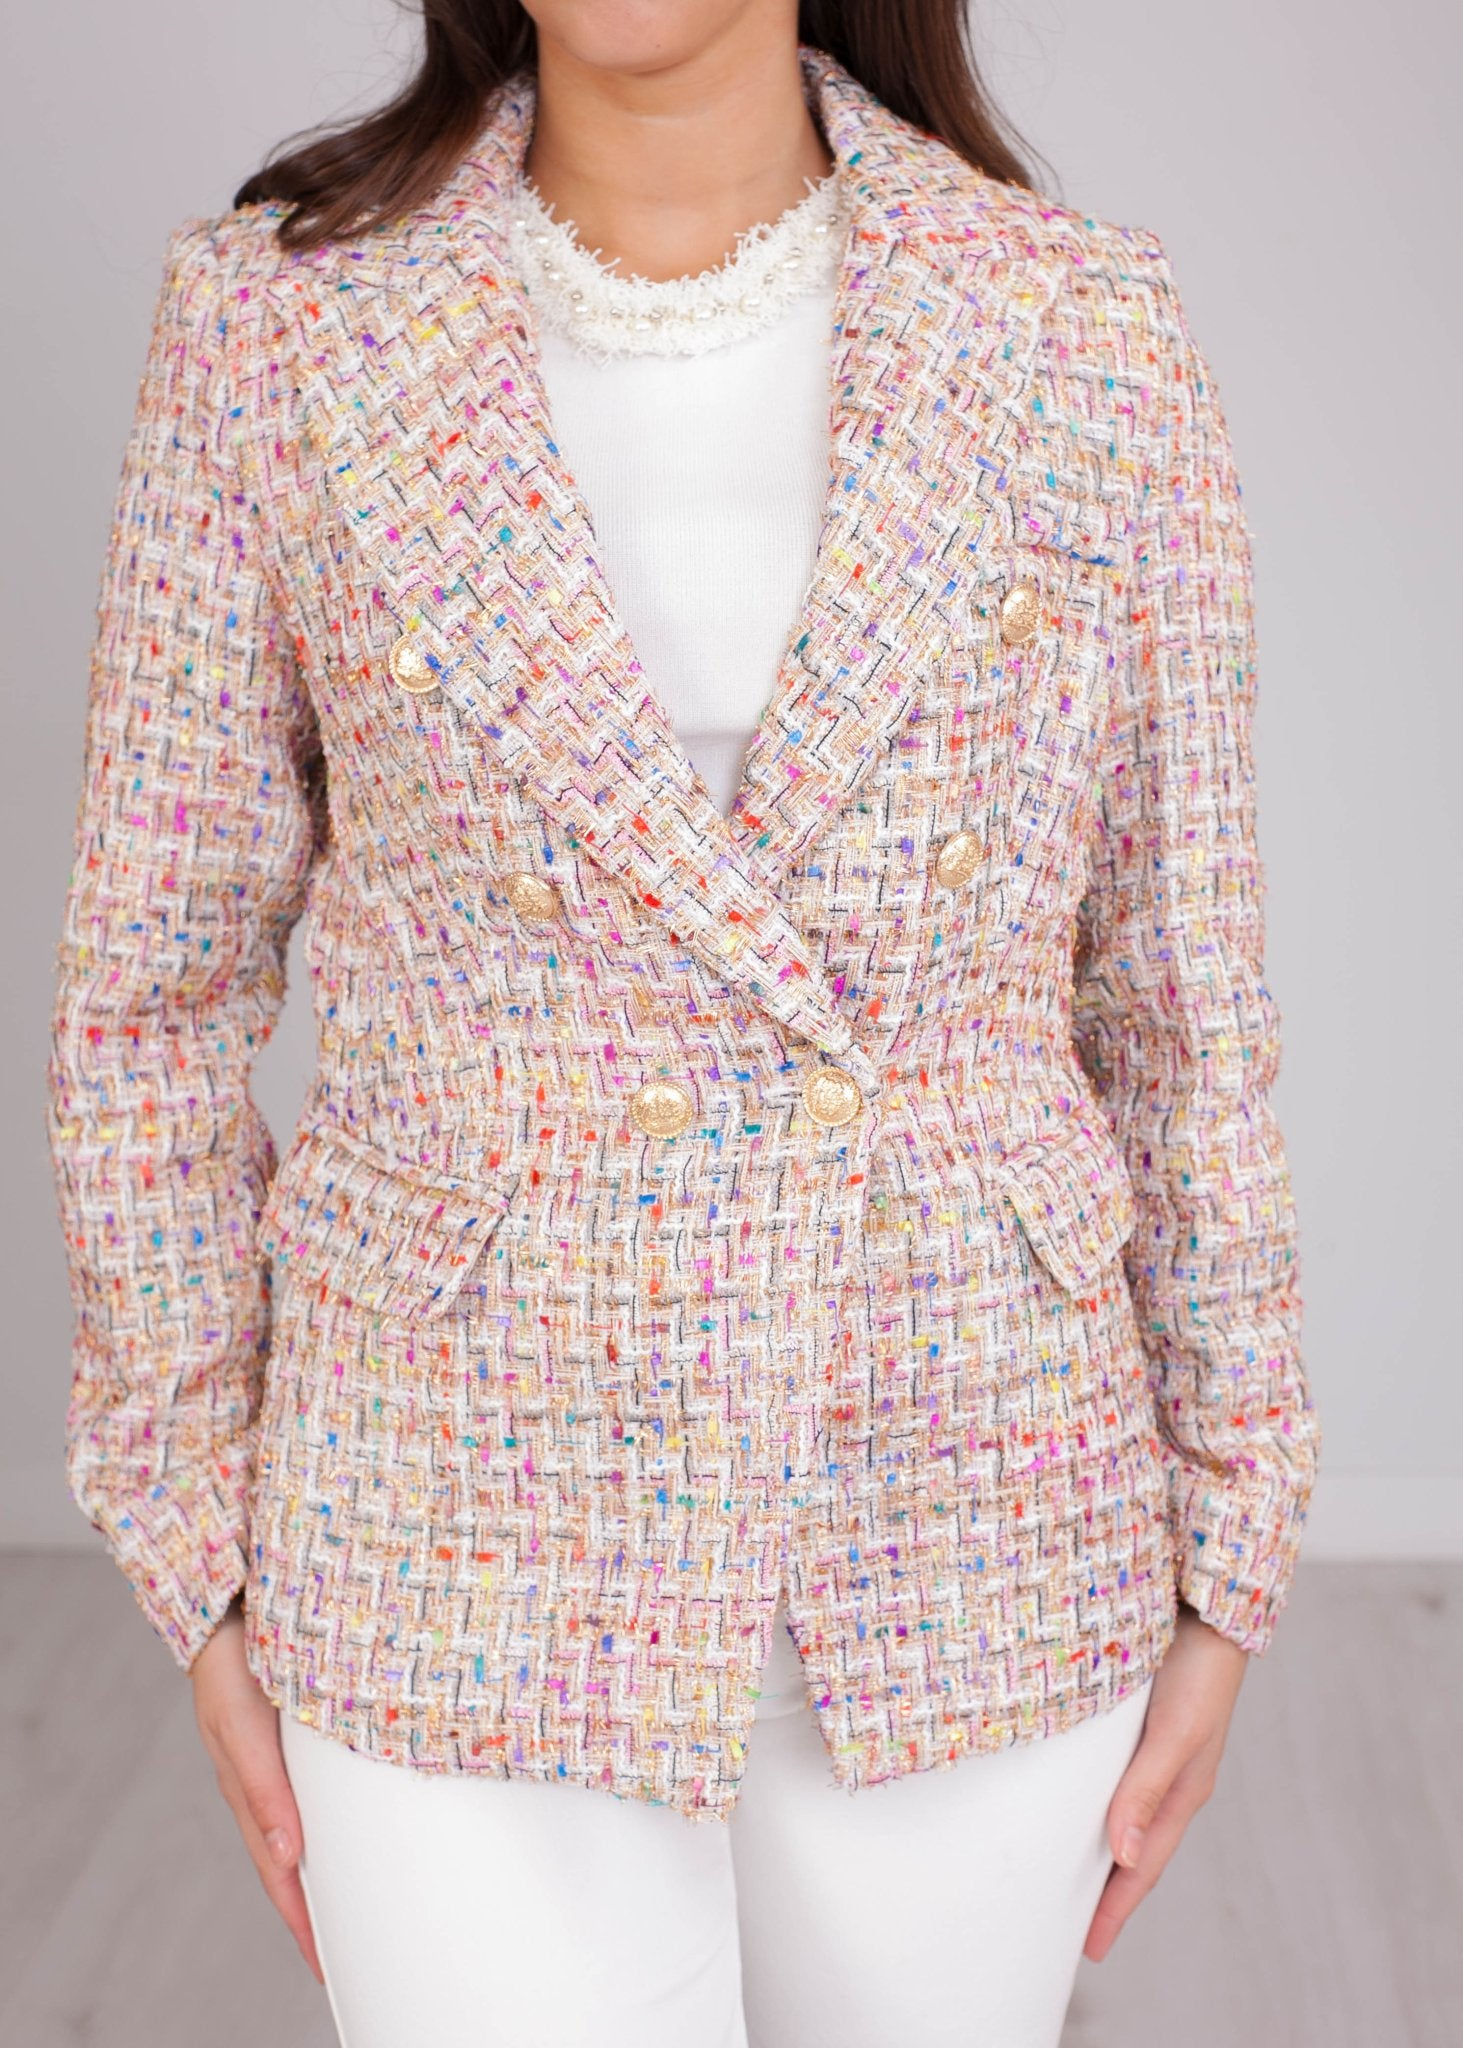 Arabella Tan Multi Tweed Blazer - The Walk in Wardrobe